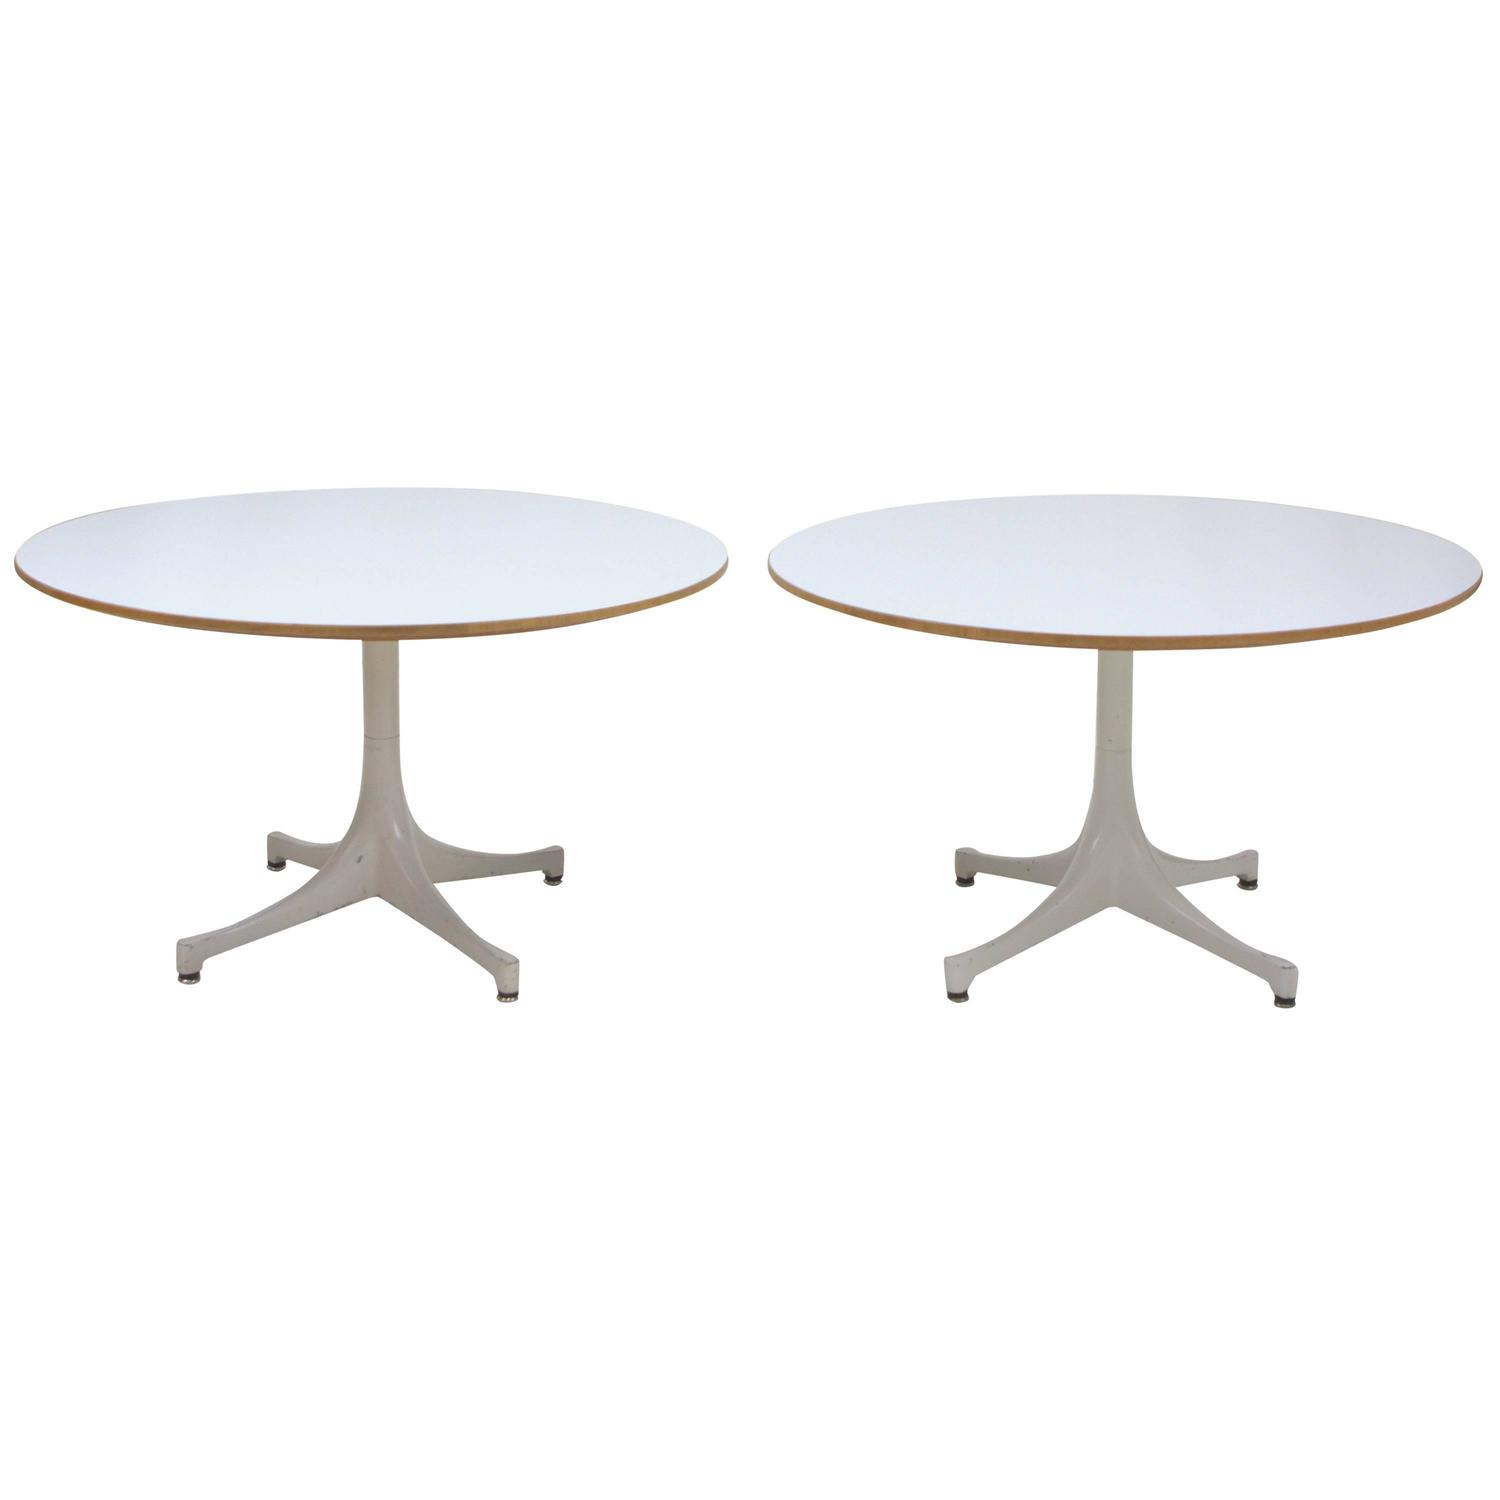 George nelson swag leg end tables pair for herman miller for Nelson swag leg table